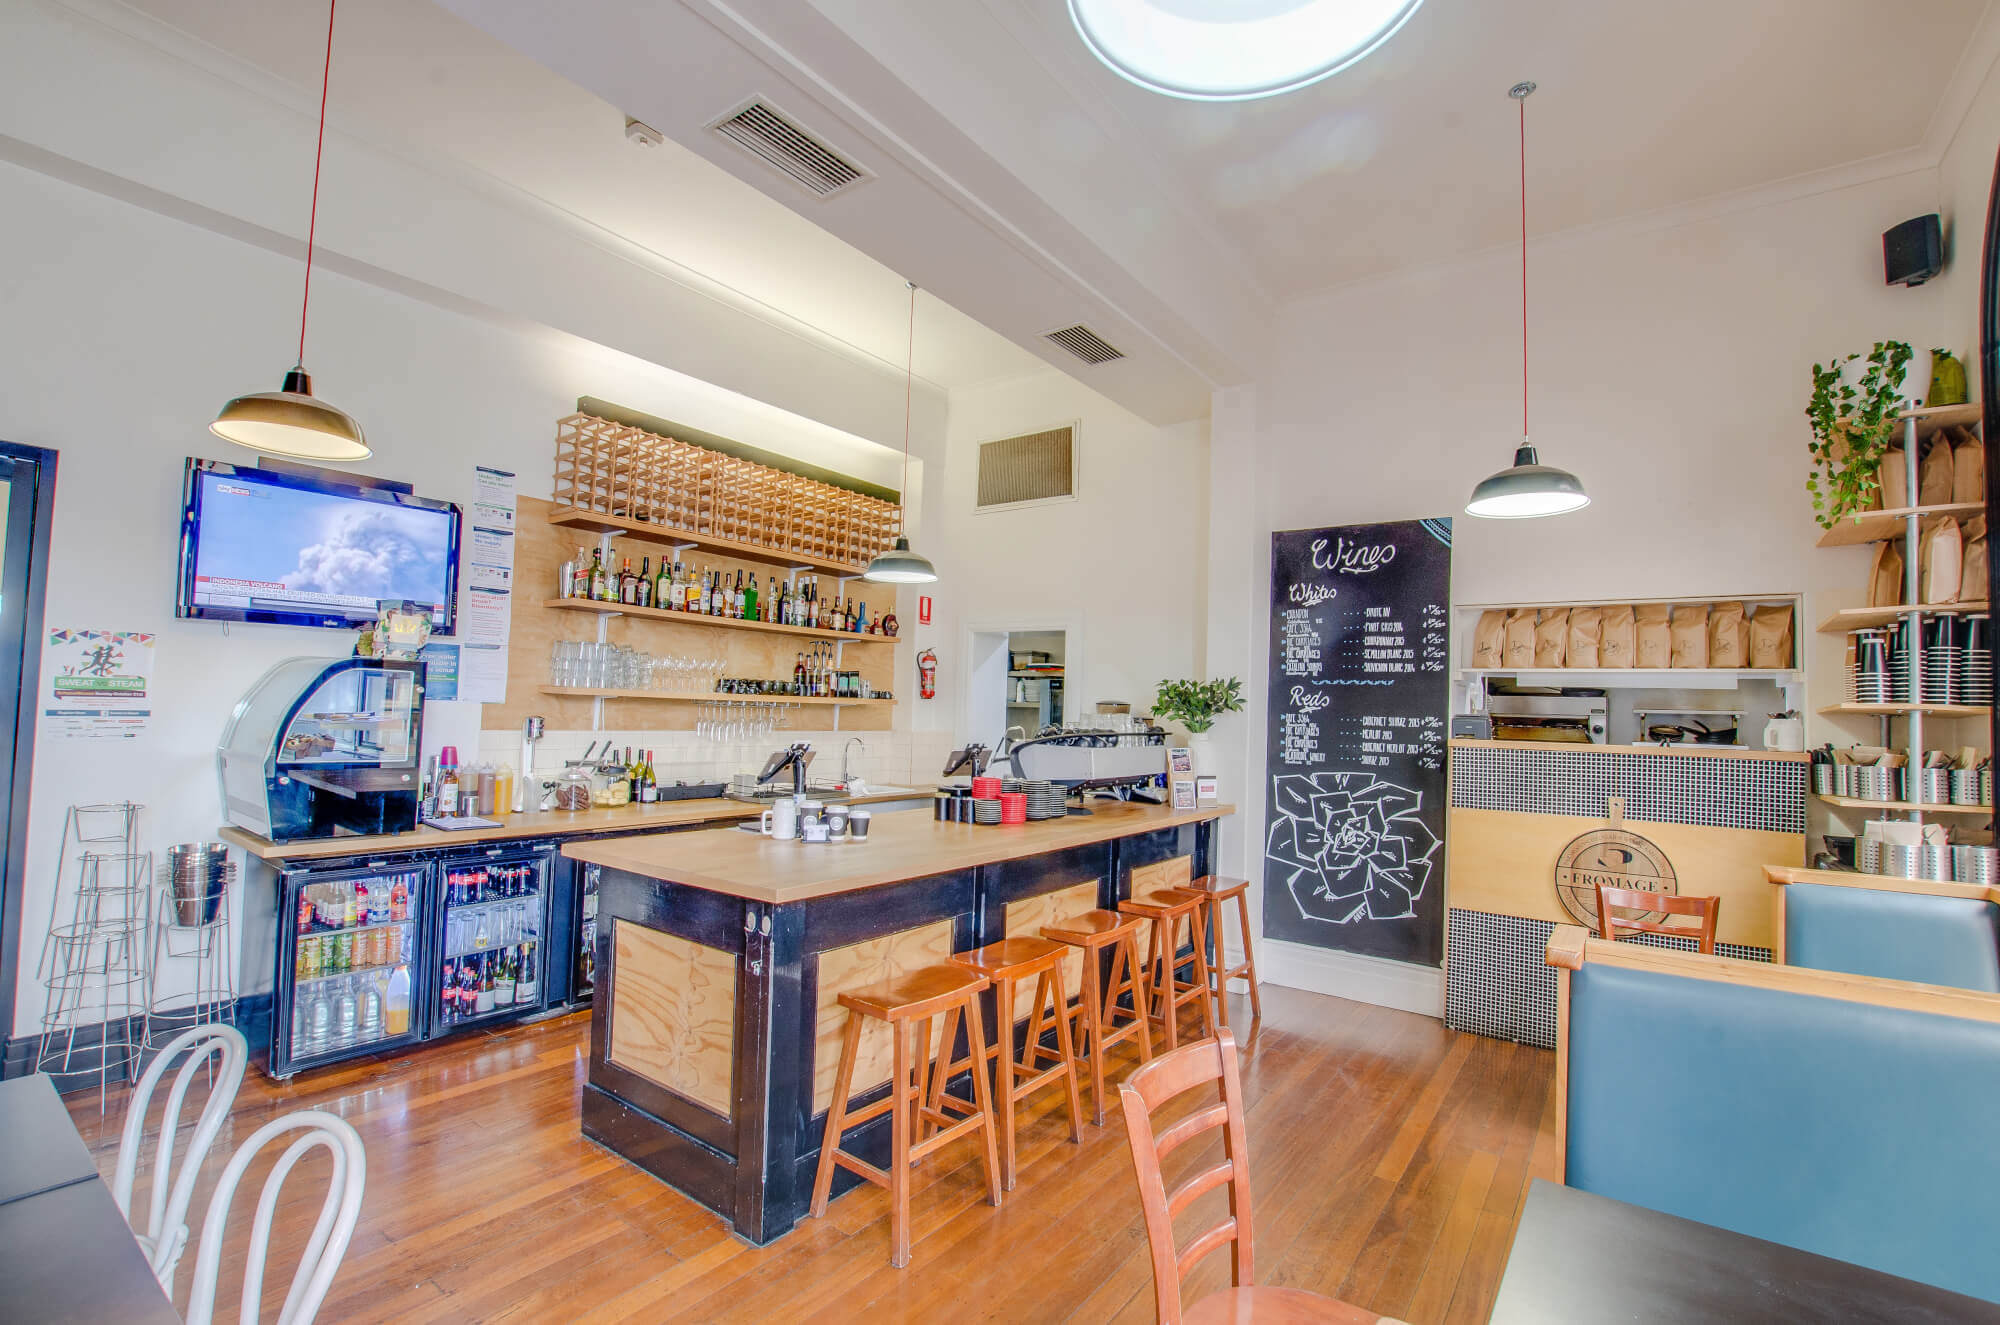 Private Business For Sale Echuca 3564 VIC 16